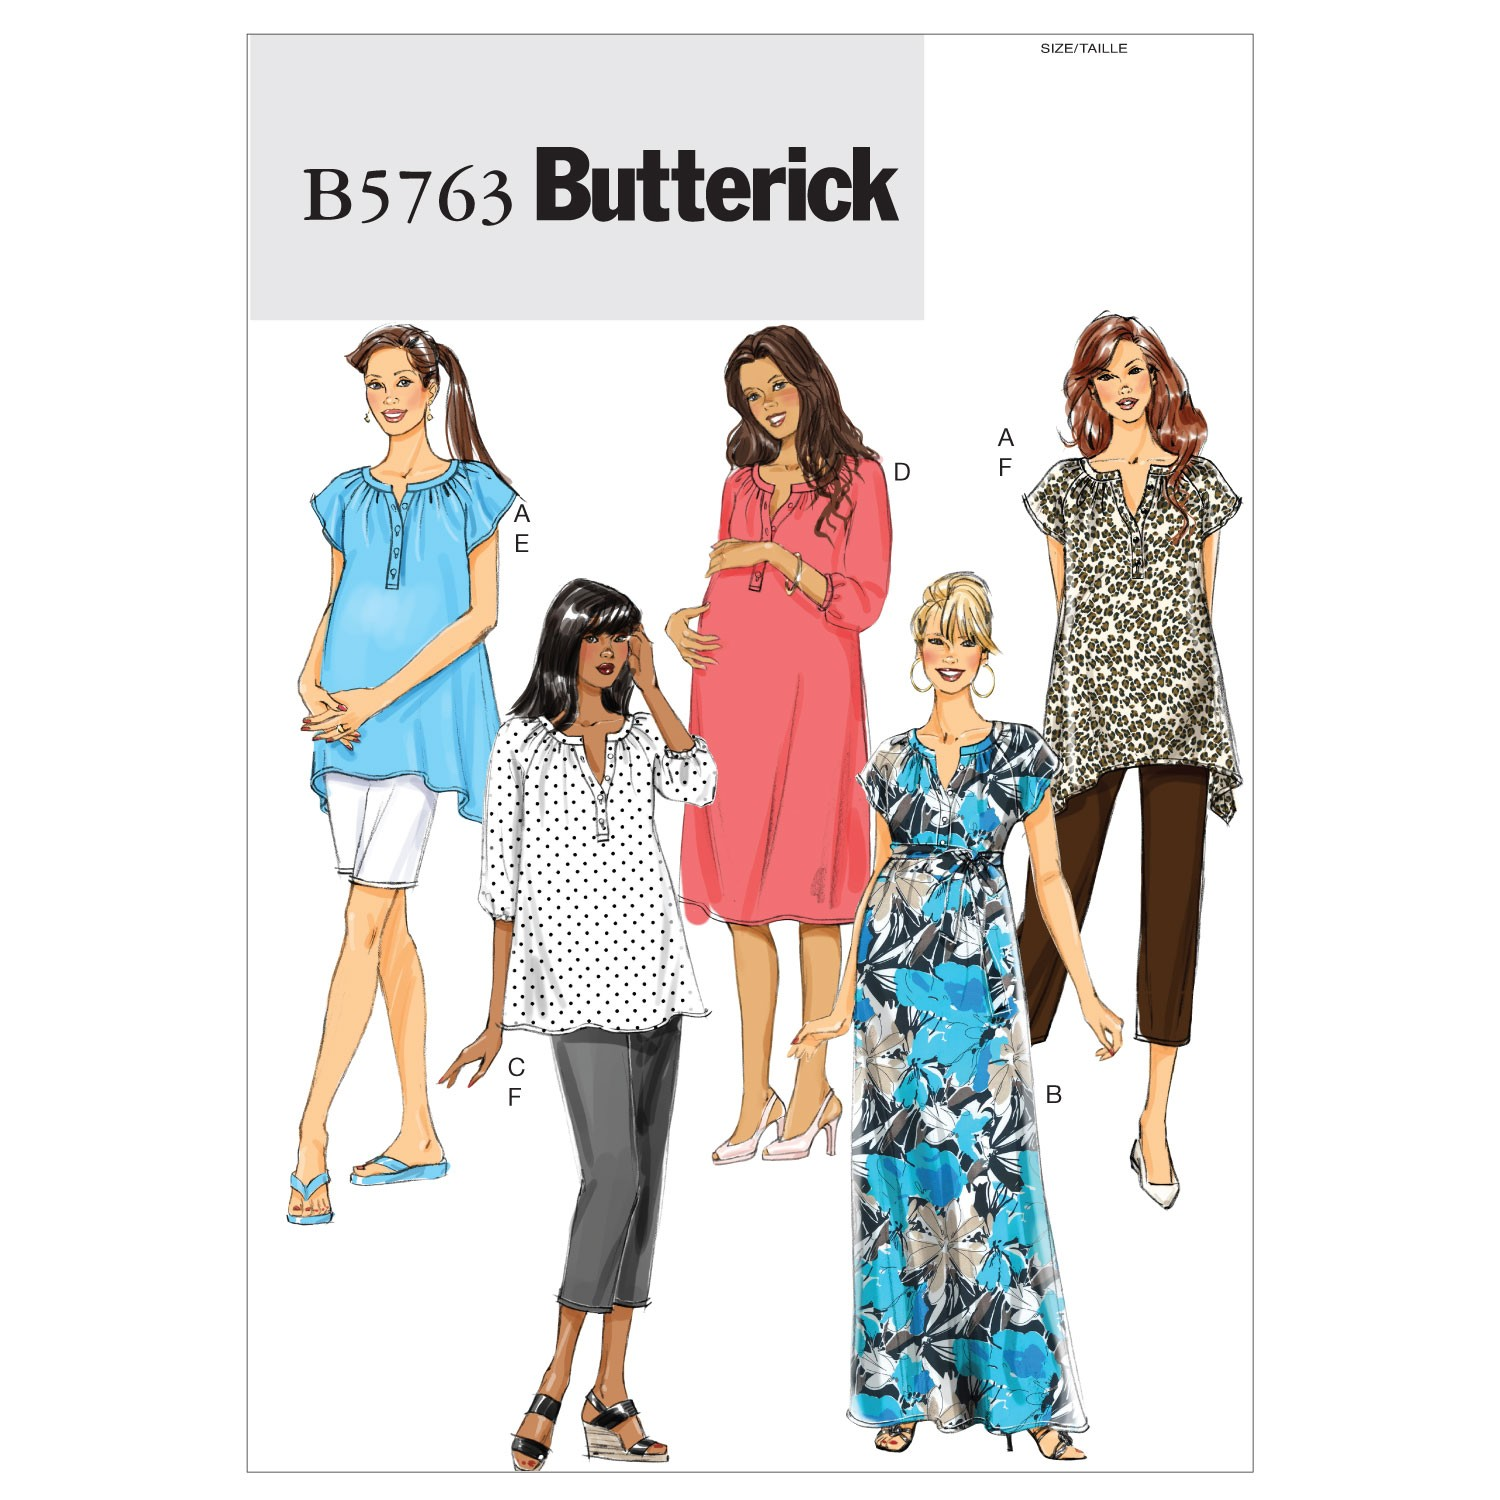 Butterick Sewing Pattern 5763 Misses' Maternity Top Dress Shorts & Trousers